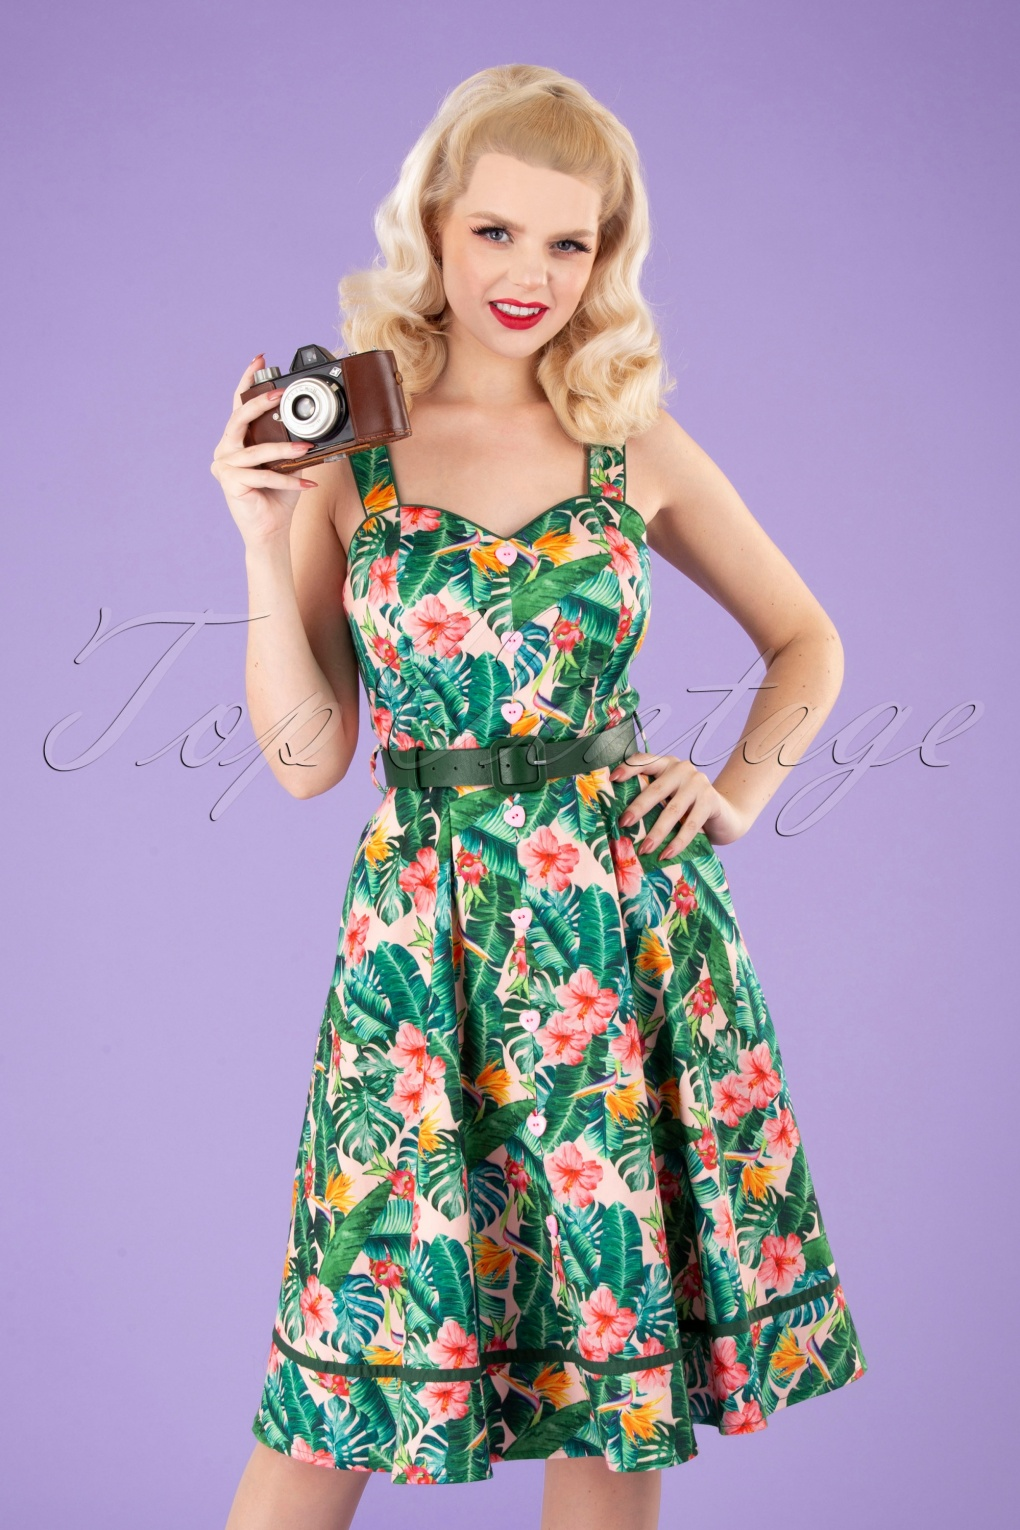 500 Vintage Style Dresses for Sale | Vintage Inspired Dresses Unreal Redheads Collaboration  50s Jinkx Floral Tropical Dress in Pink and Green £65.76 AT vintagedancer.com